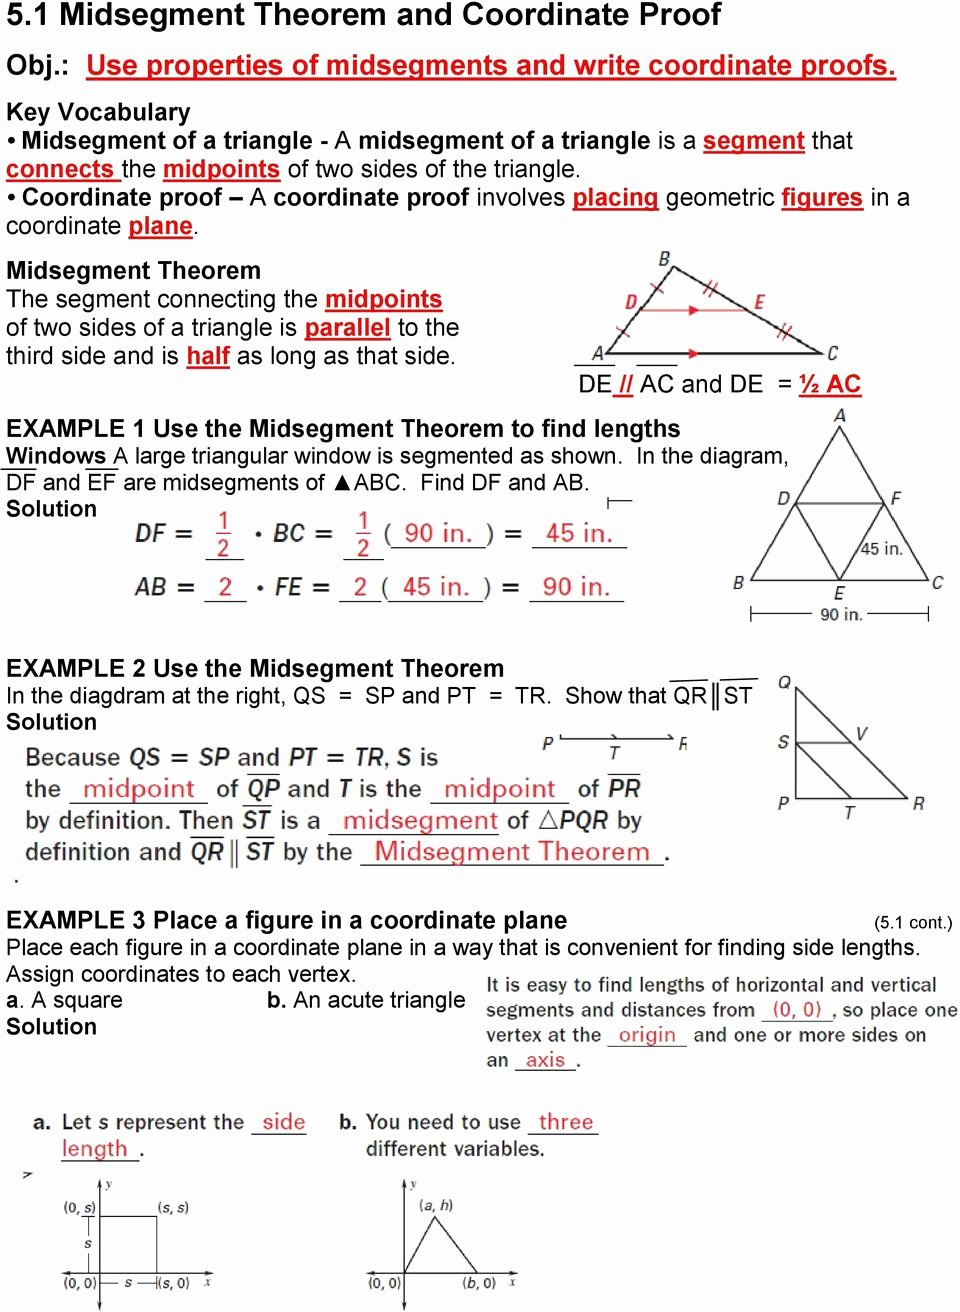 Midsegment theorem Worksheet Answer Key Kids 5 1 Midsegment theorem and Coordinate Proof Pdf Free Download